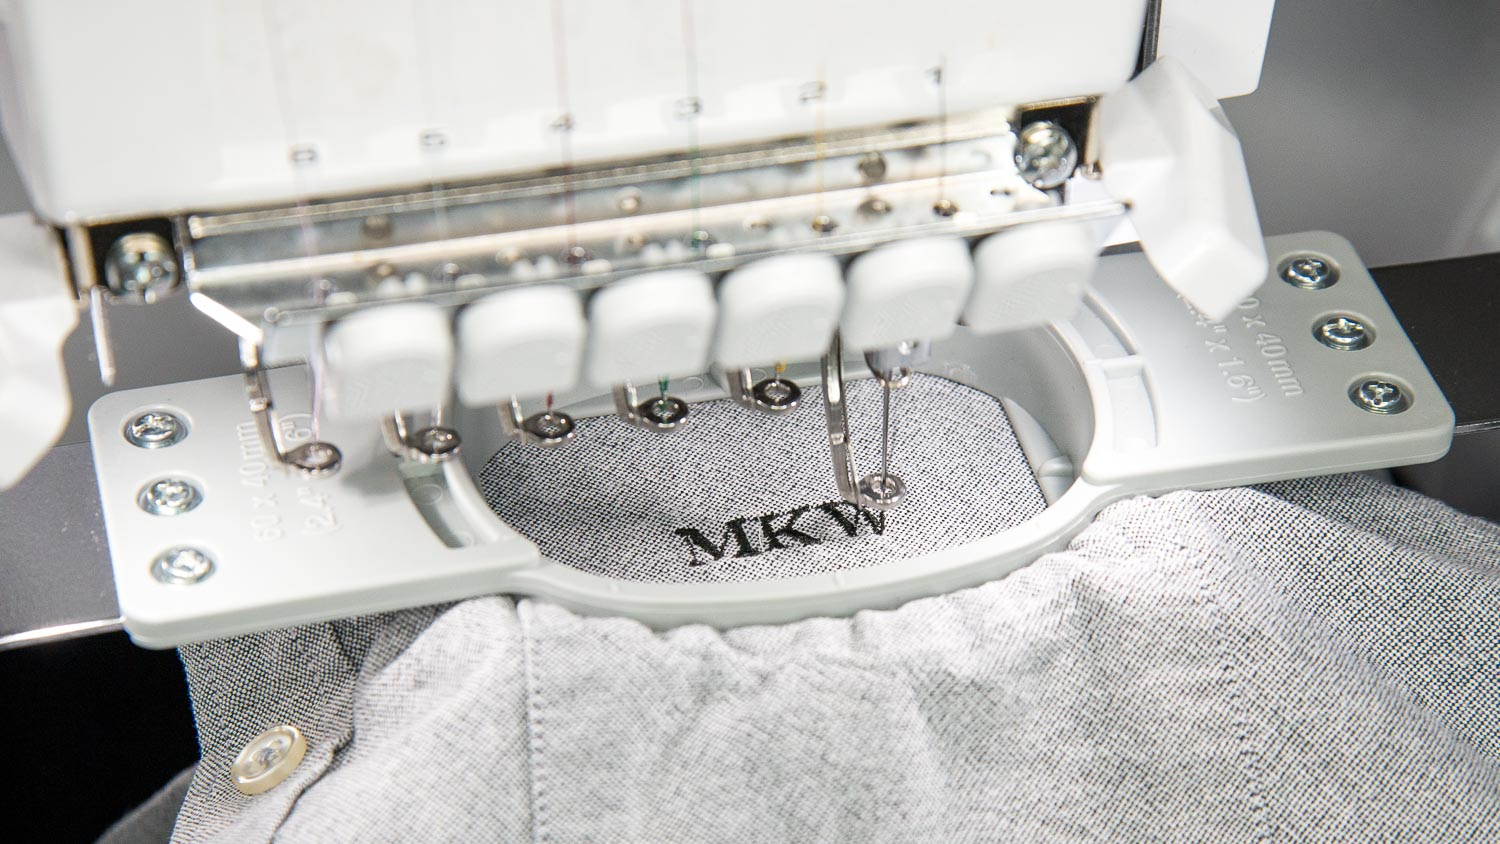 Live Event Embroidery - Impressive digital embroidery machines for guests to add designs or monograms to all sorts of items.SEE MORE